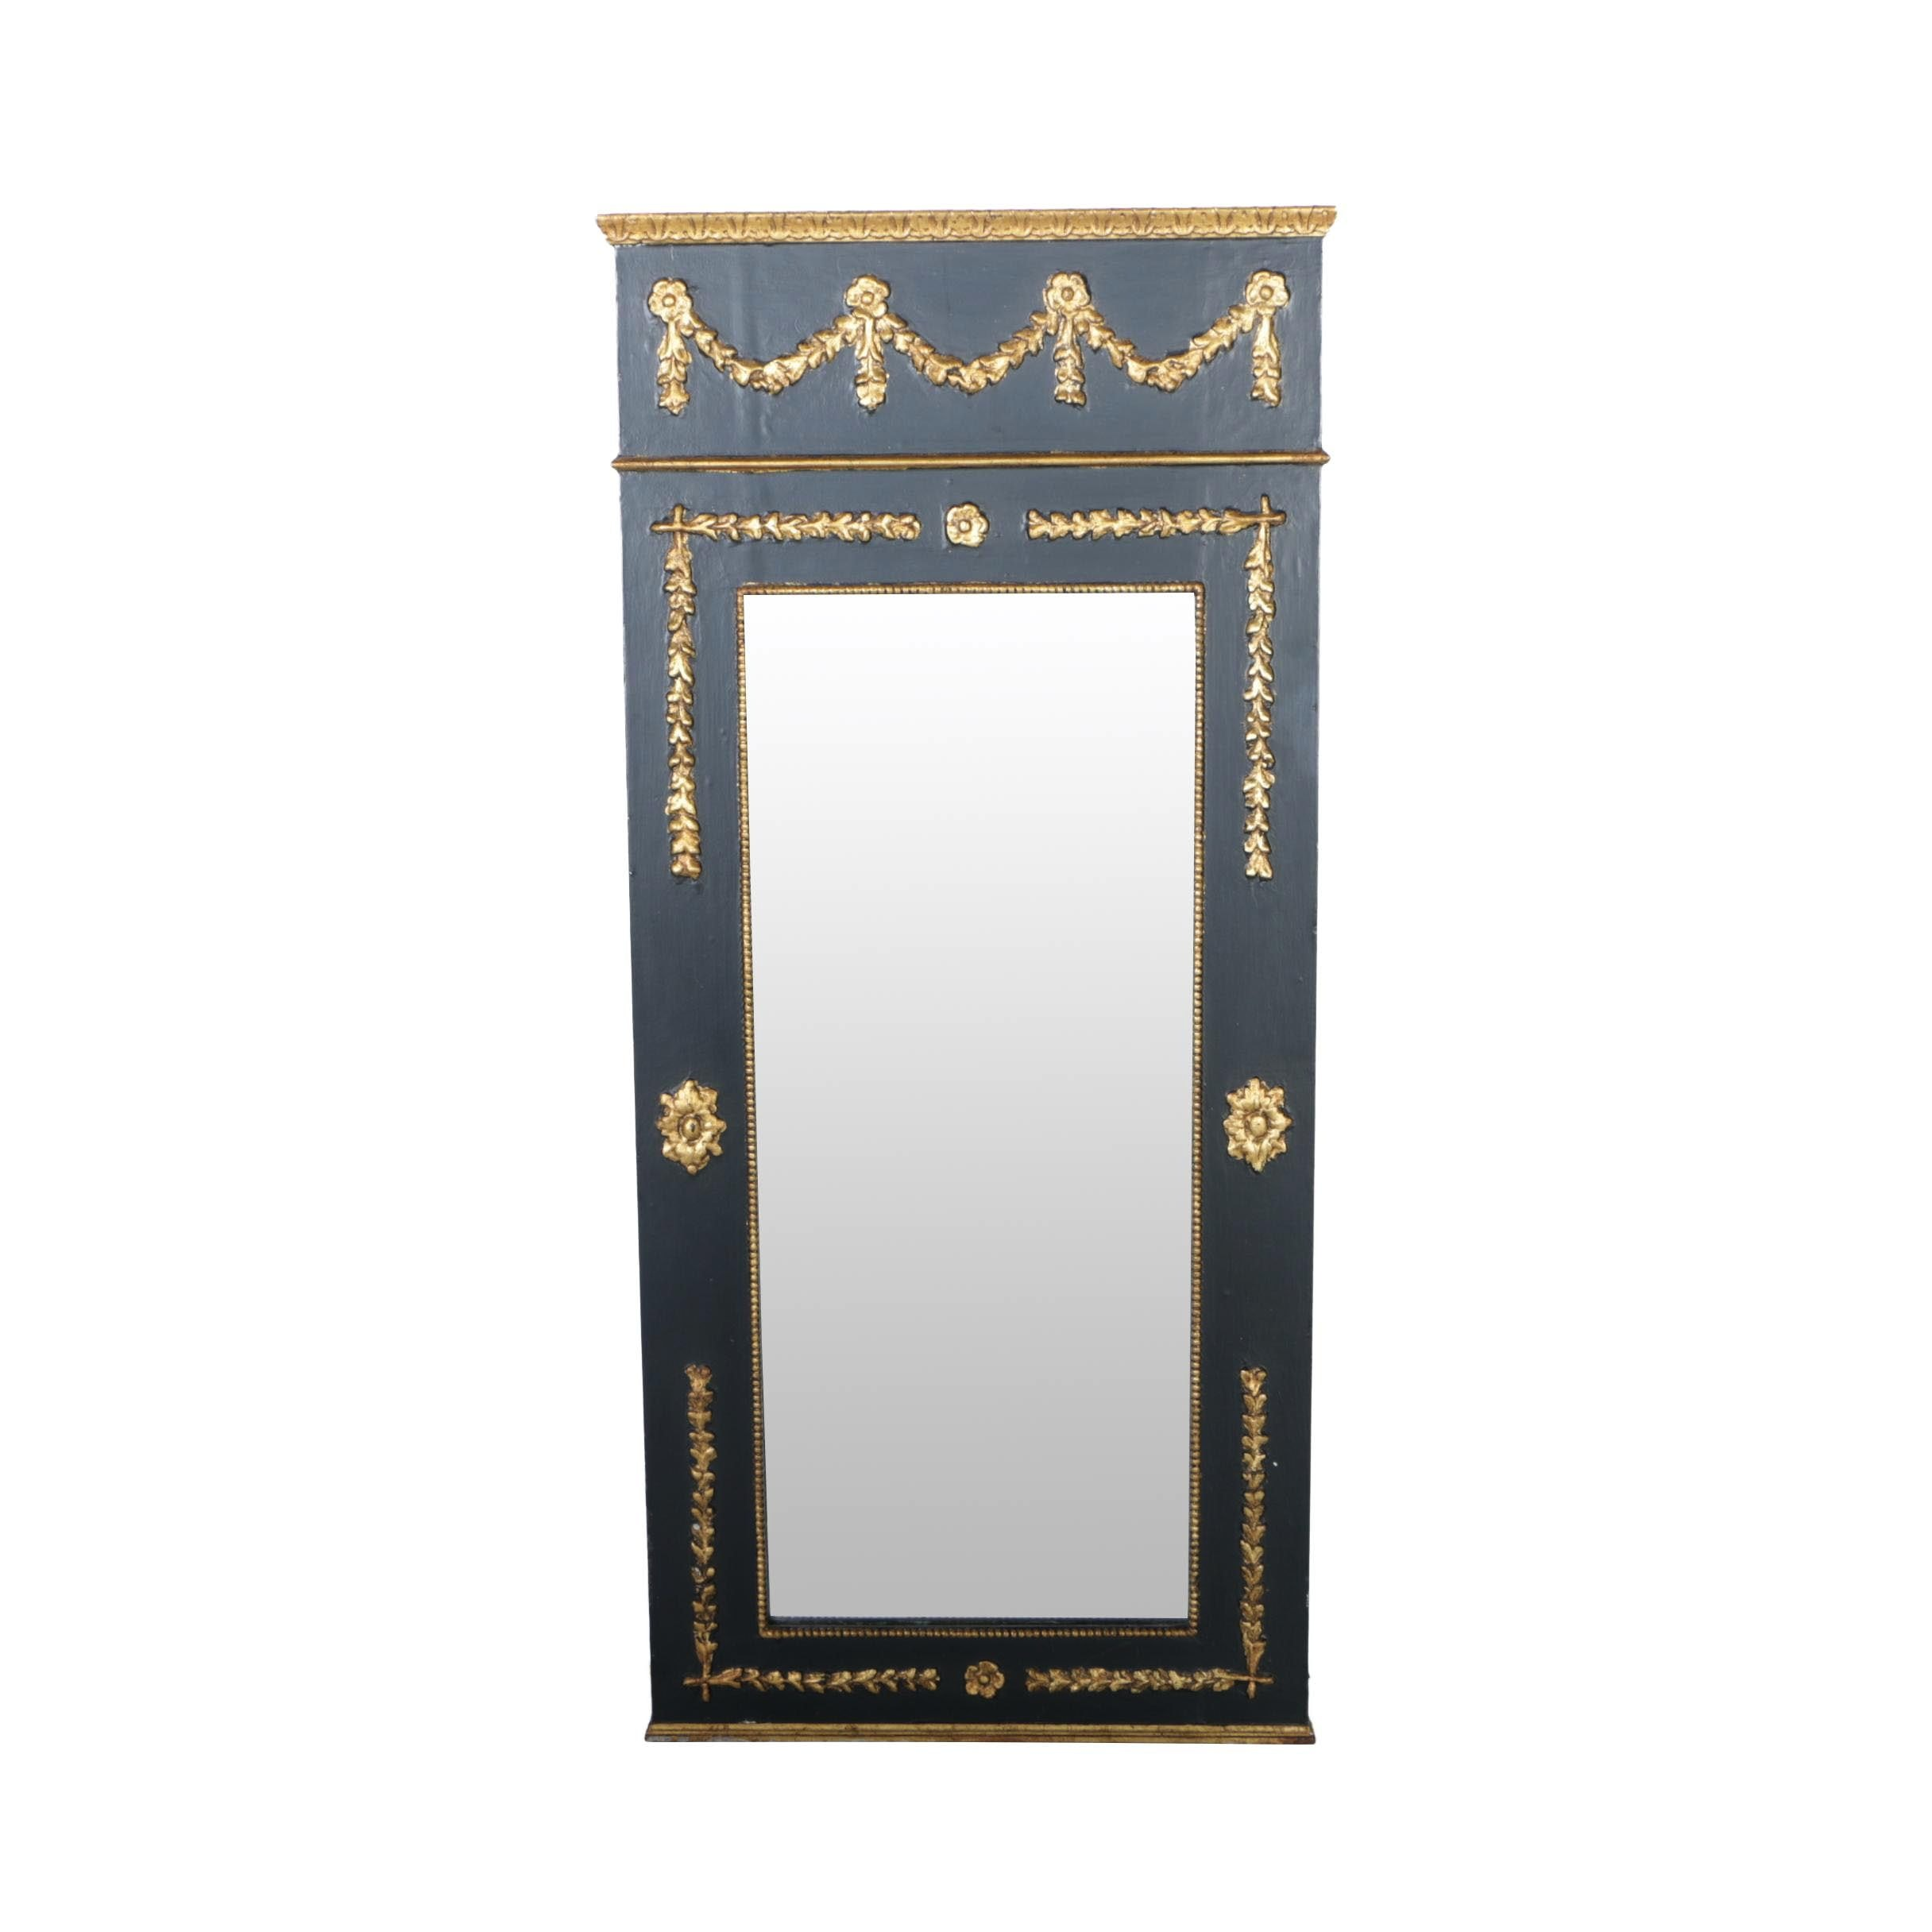 Empire Style Black and Gold-Tone Wooden Wall Mirror